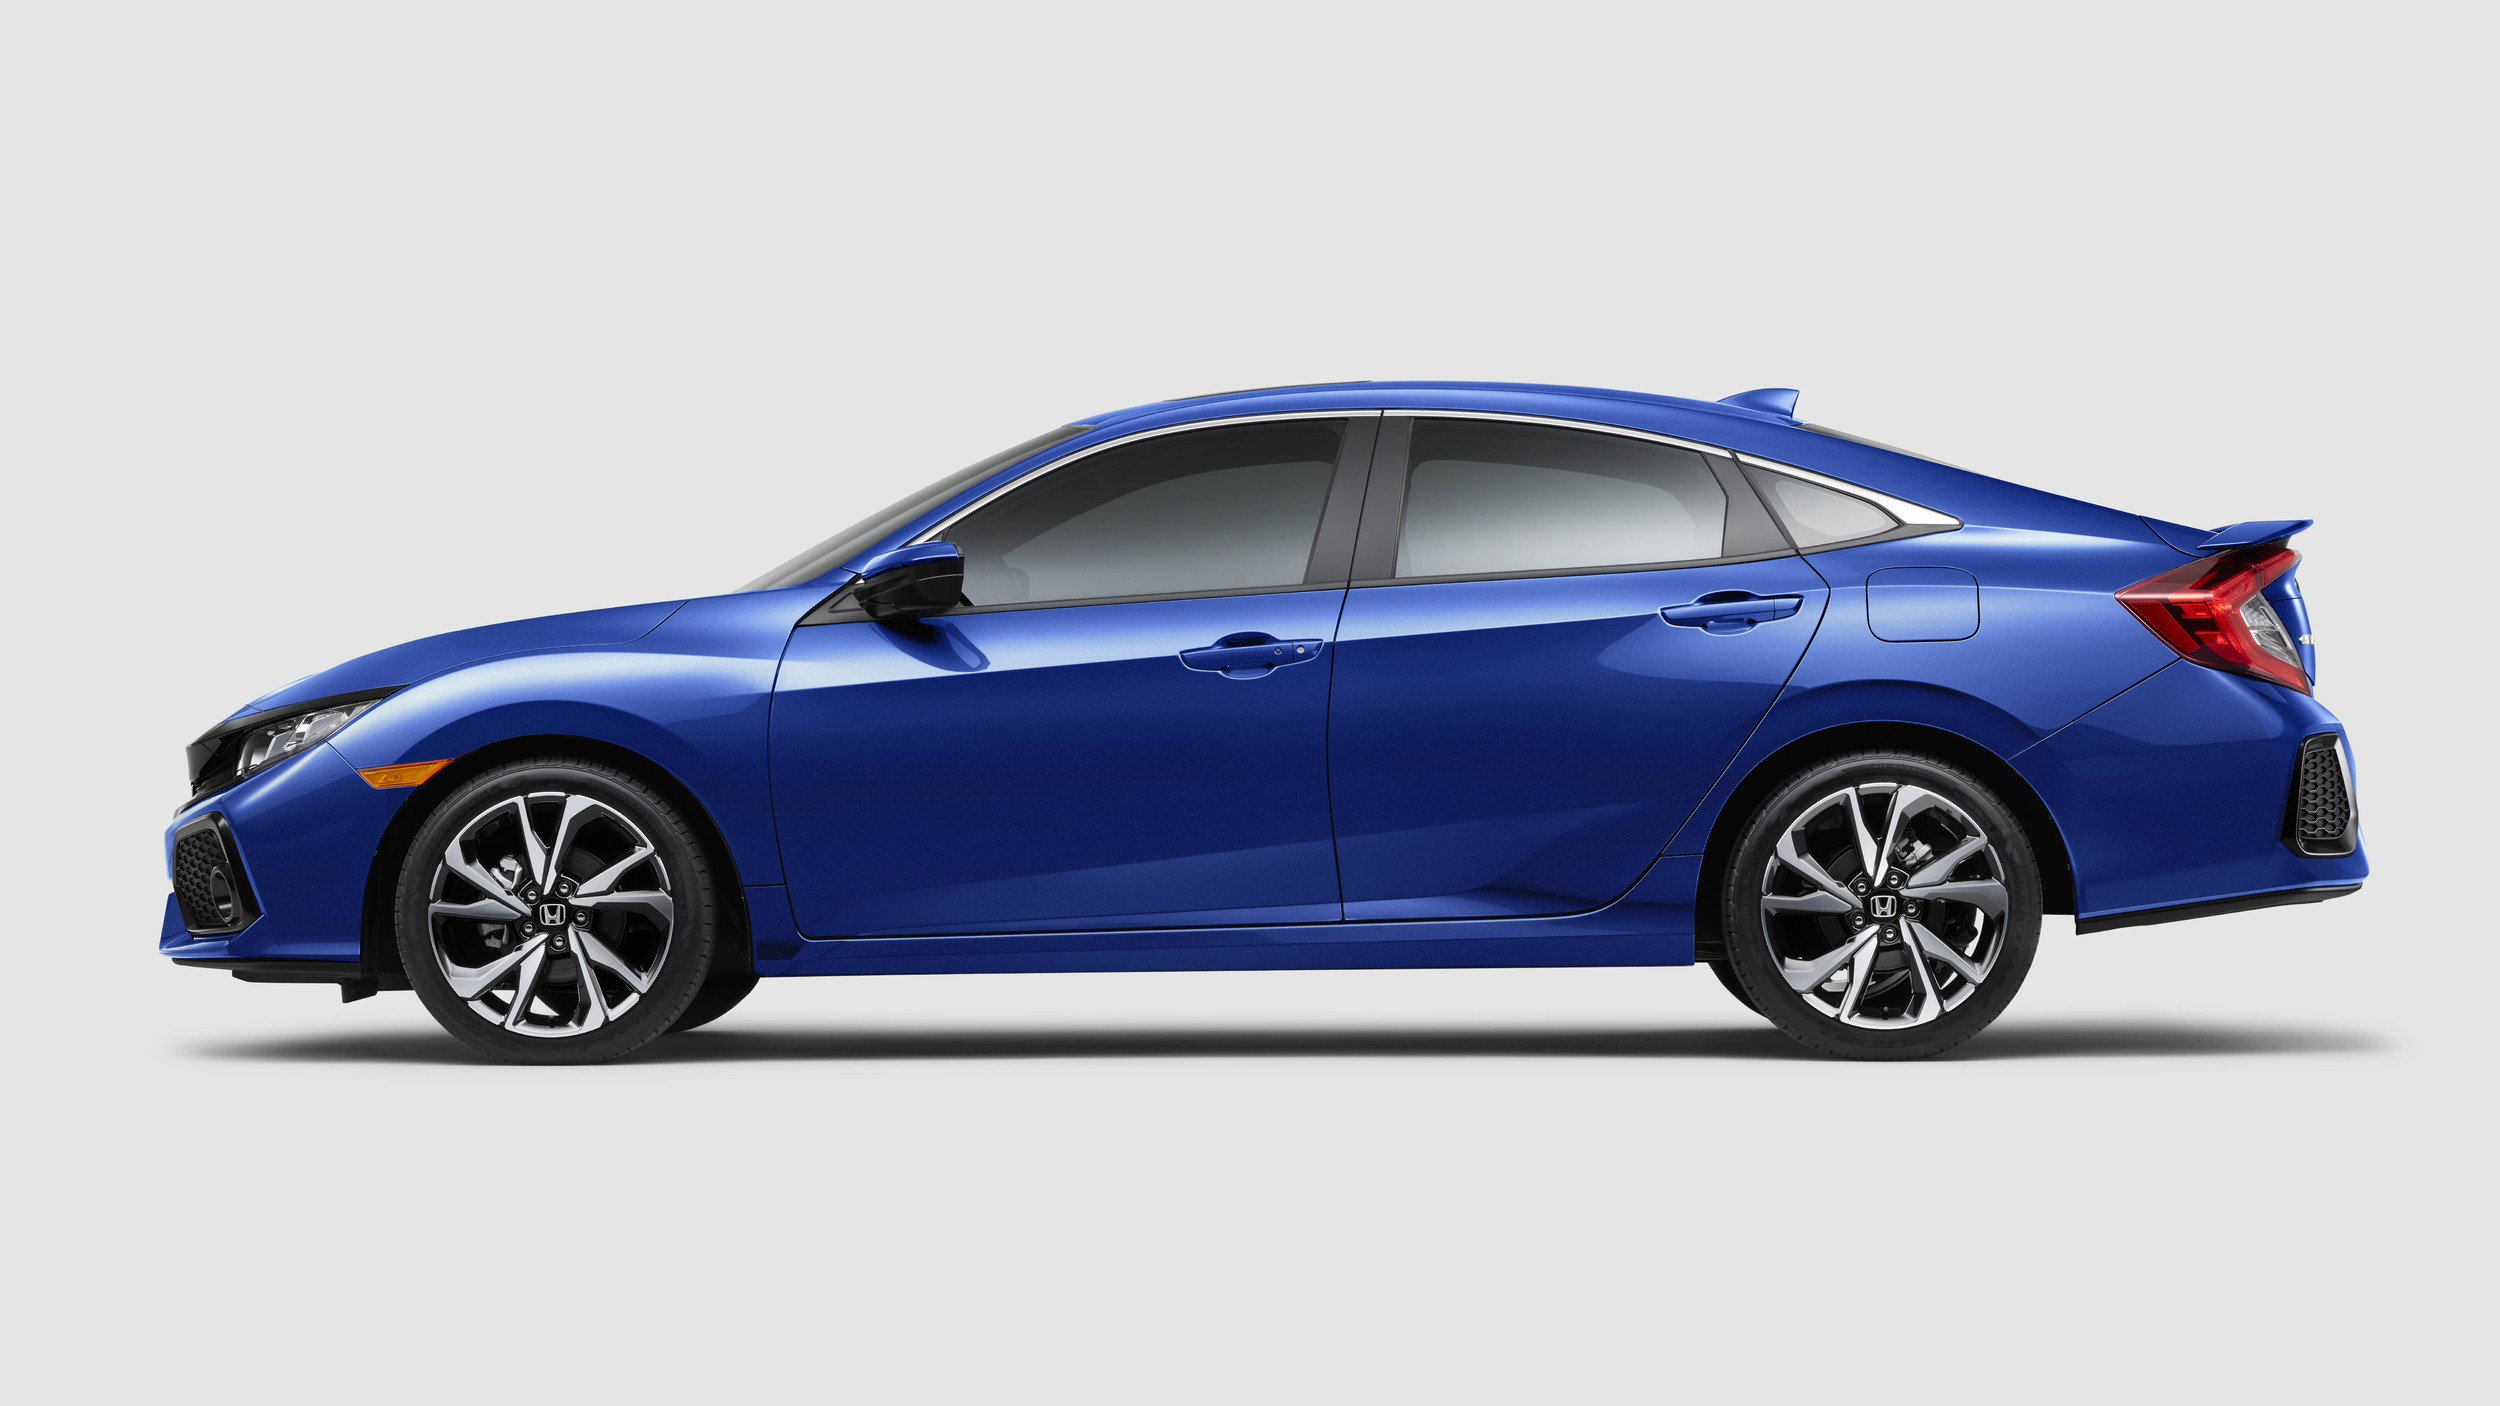 Honda Civic Si 2018 (5)